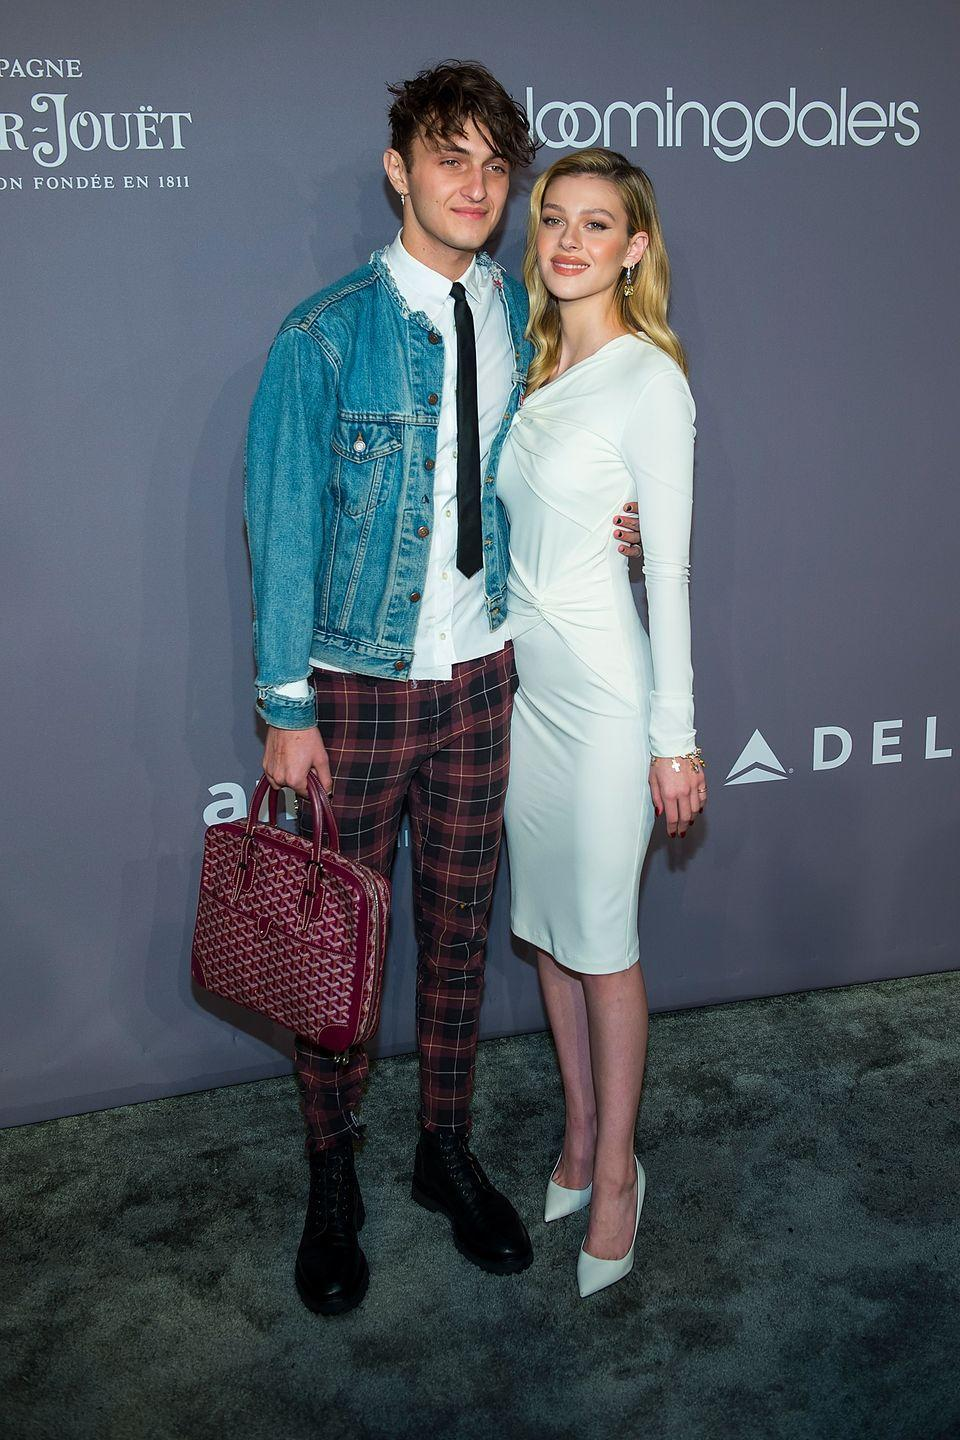 <p>The star walked the red carpet with her ex-boyfriend Anwar Hadid in a white one-shoulder midi, figure-hugging dress to the New York City event. She styled the look with heeled, pointed-toe shoes. </p>